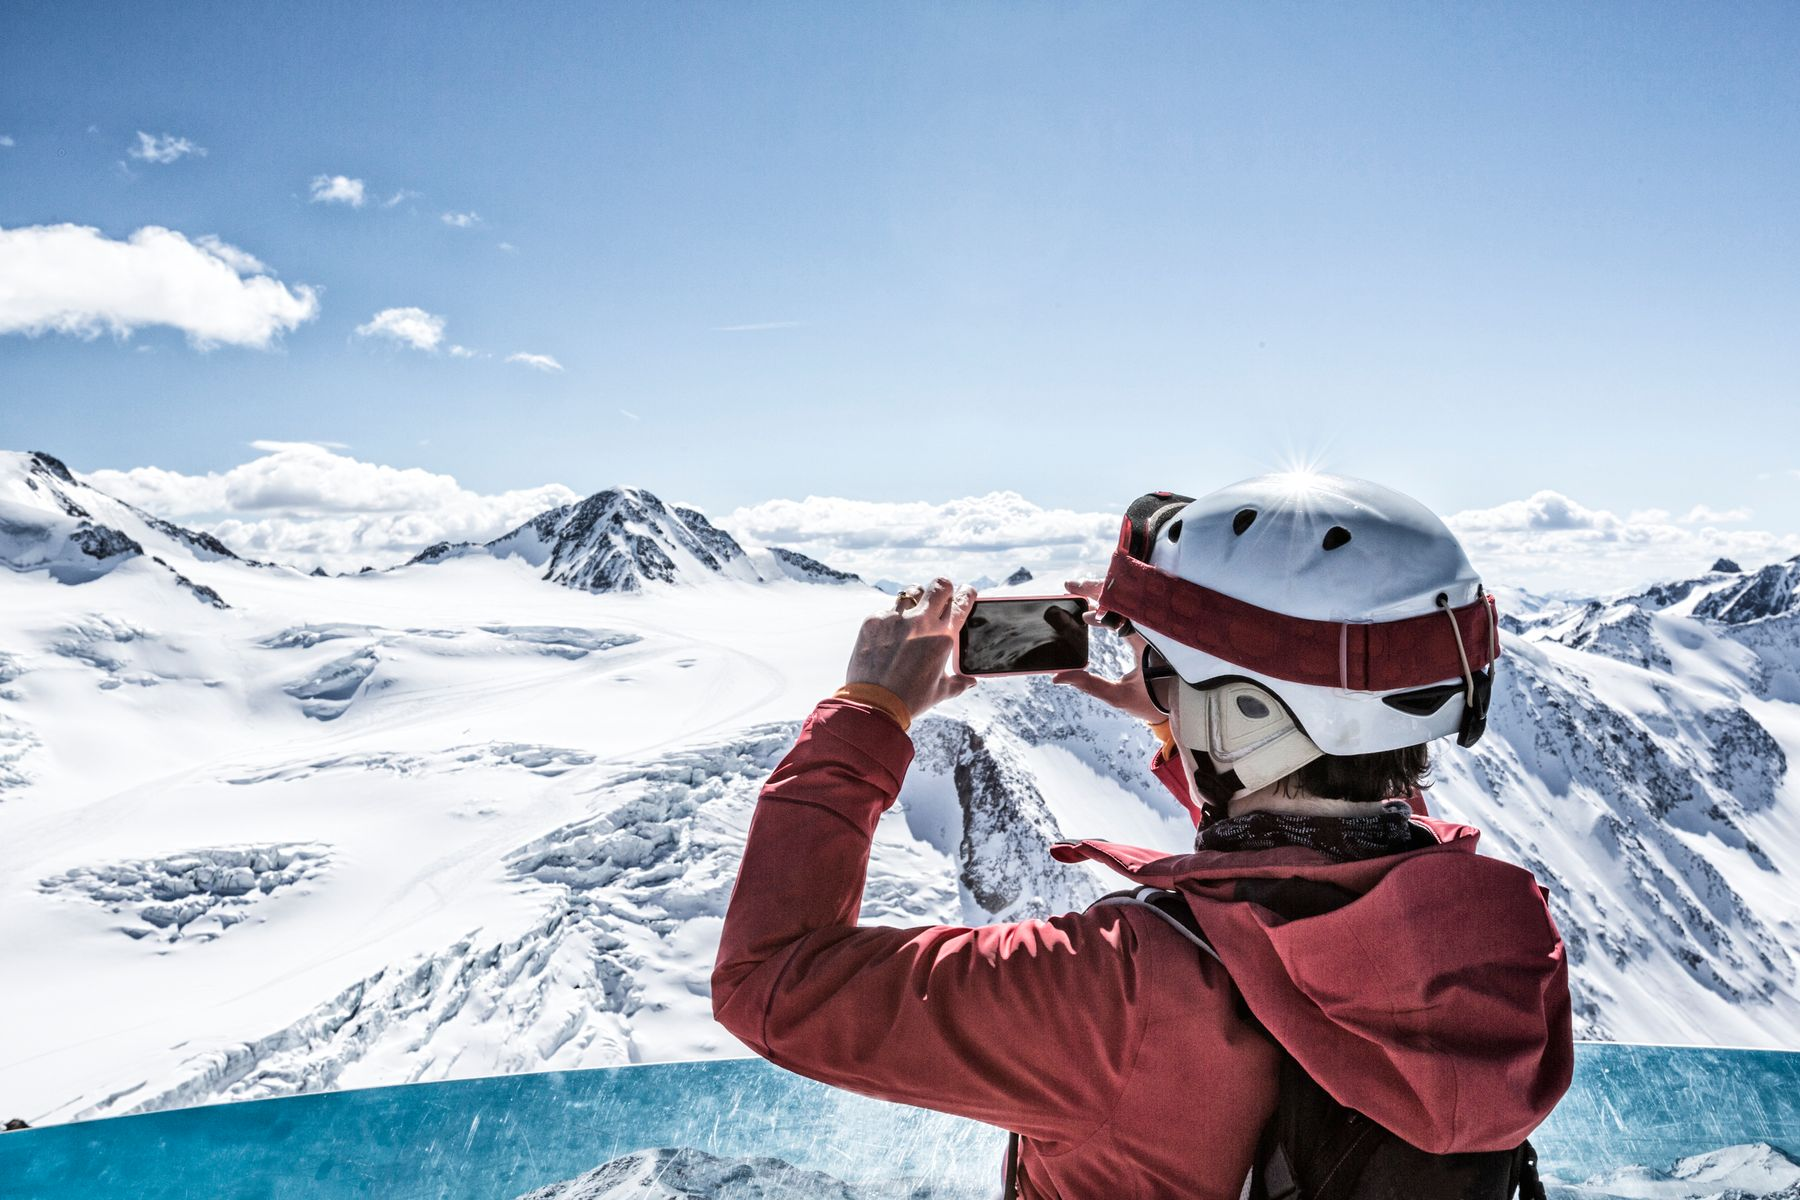 Skiier standing at top of mountain taking a photo of the scenery on their smartphone